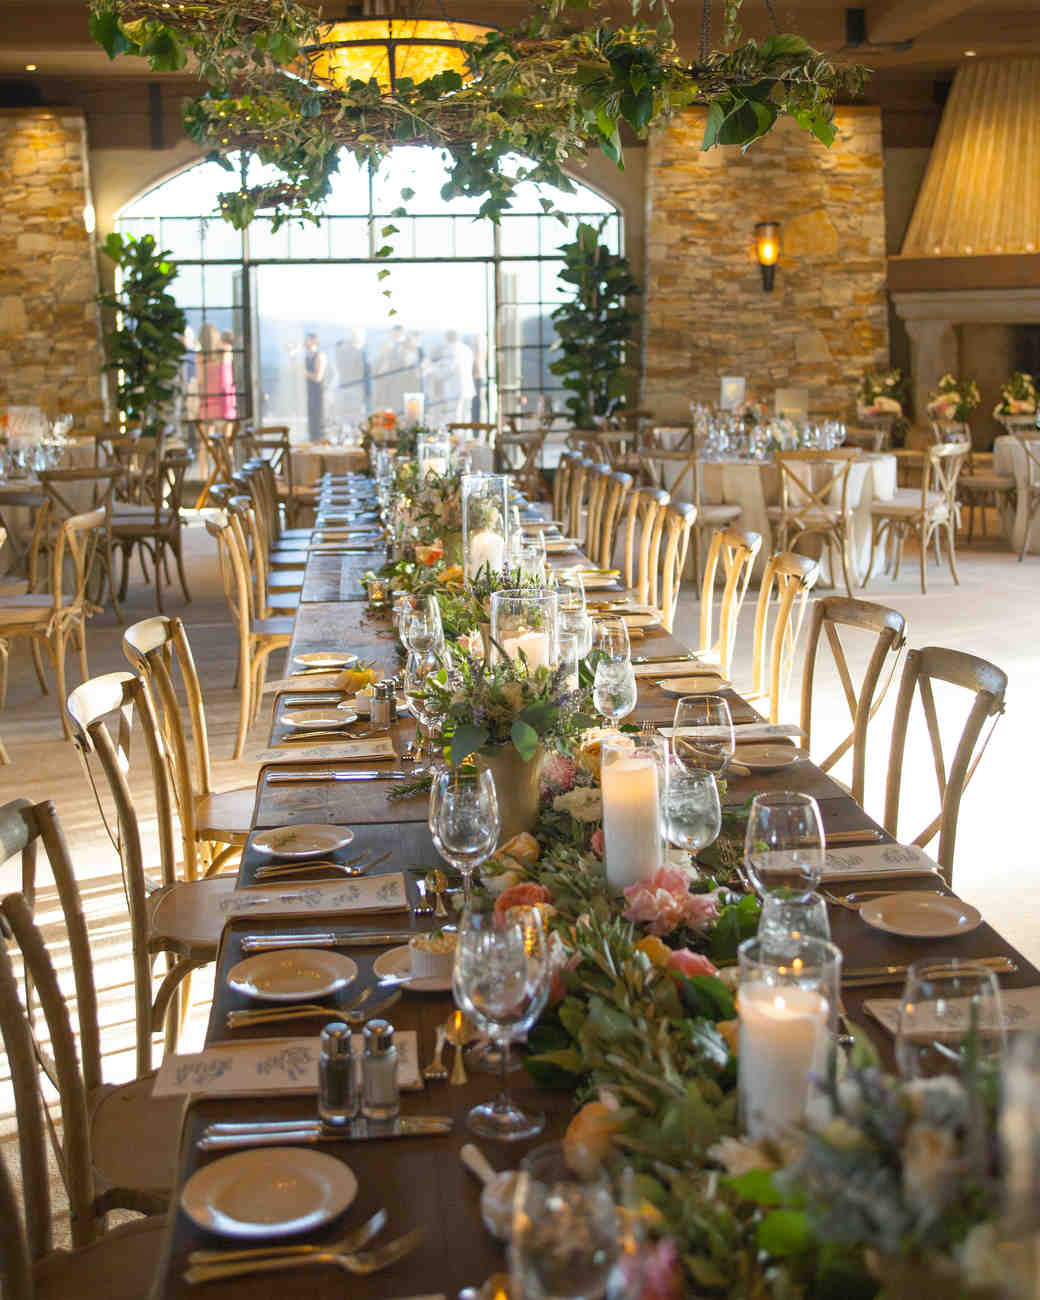 this rustic farm table seated the wedding party, and featured pink and peach flowers